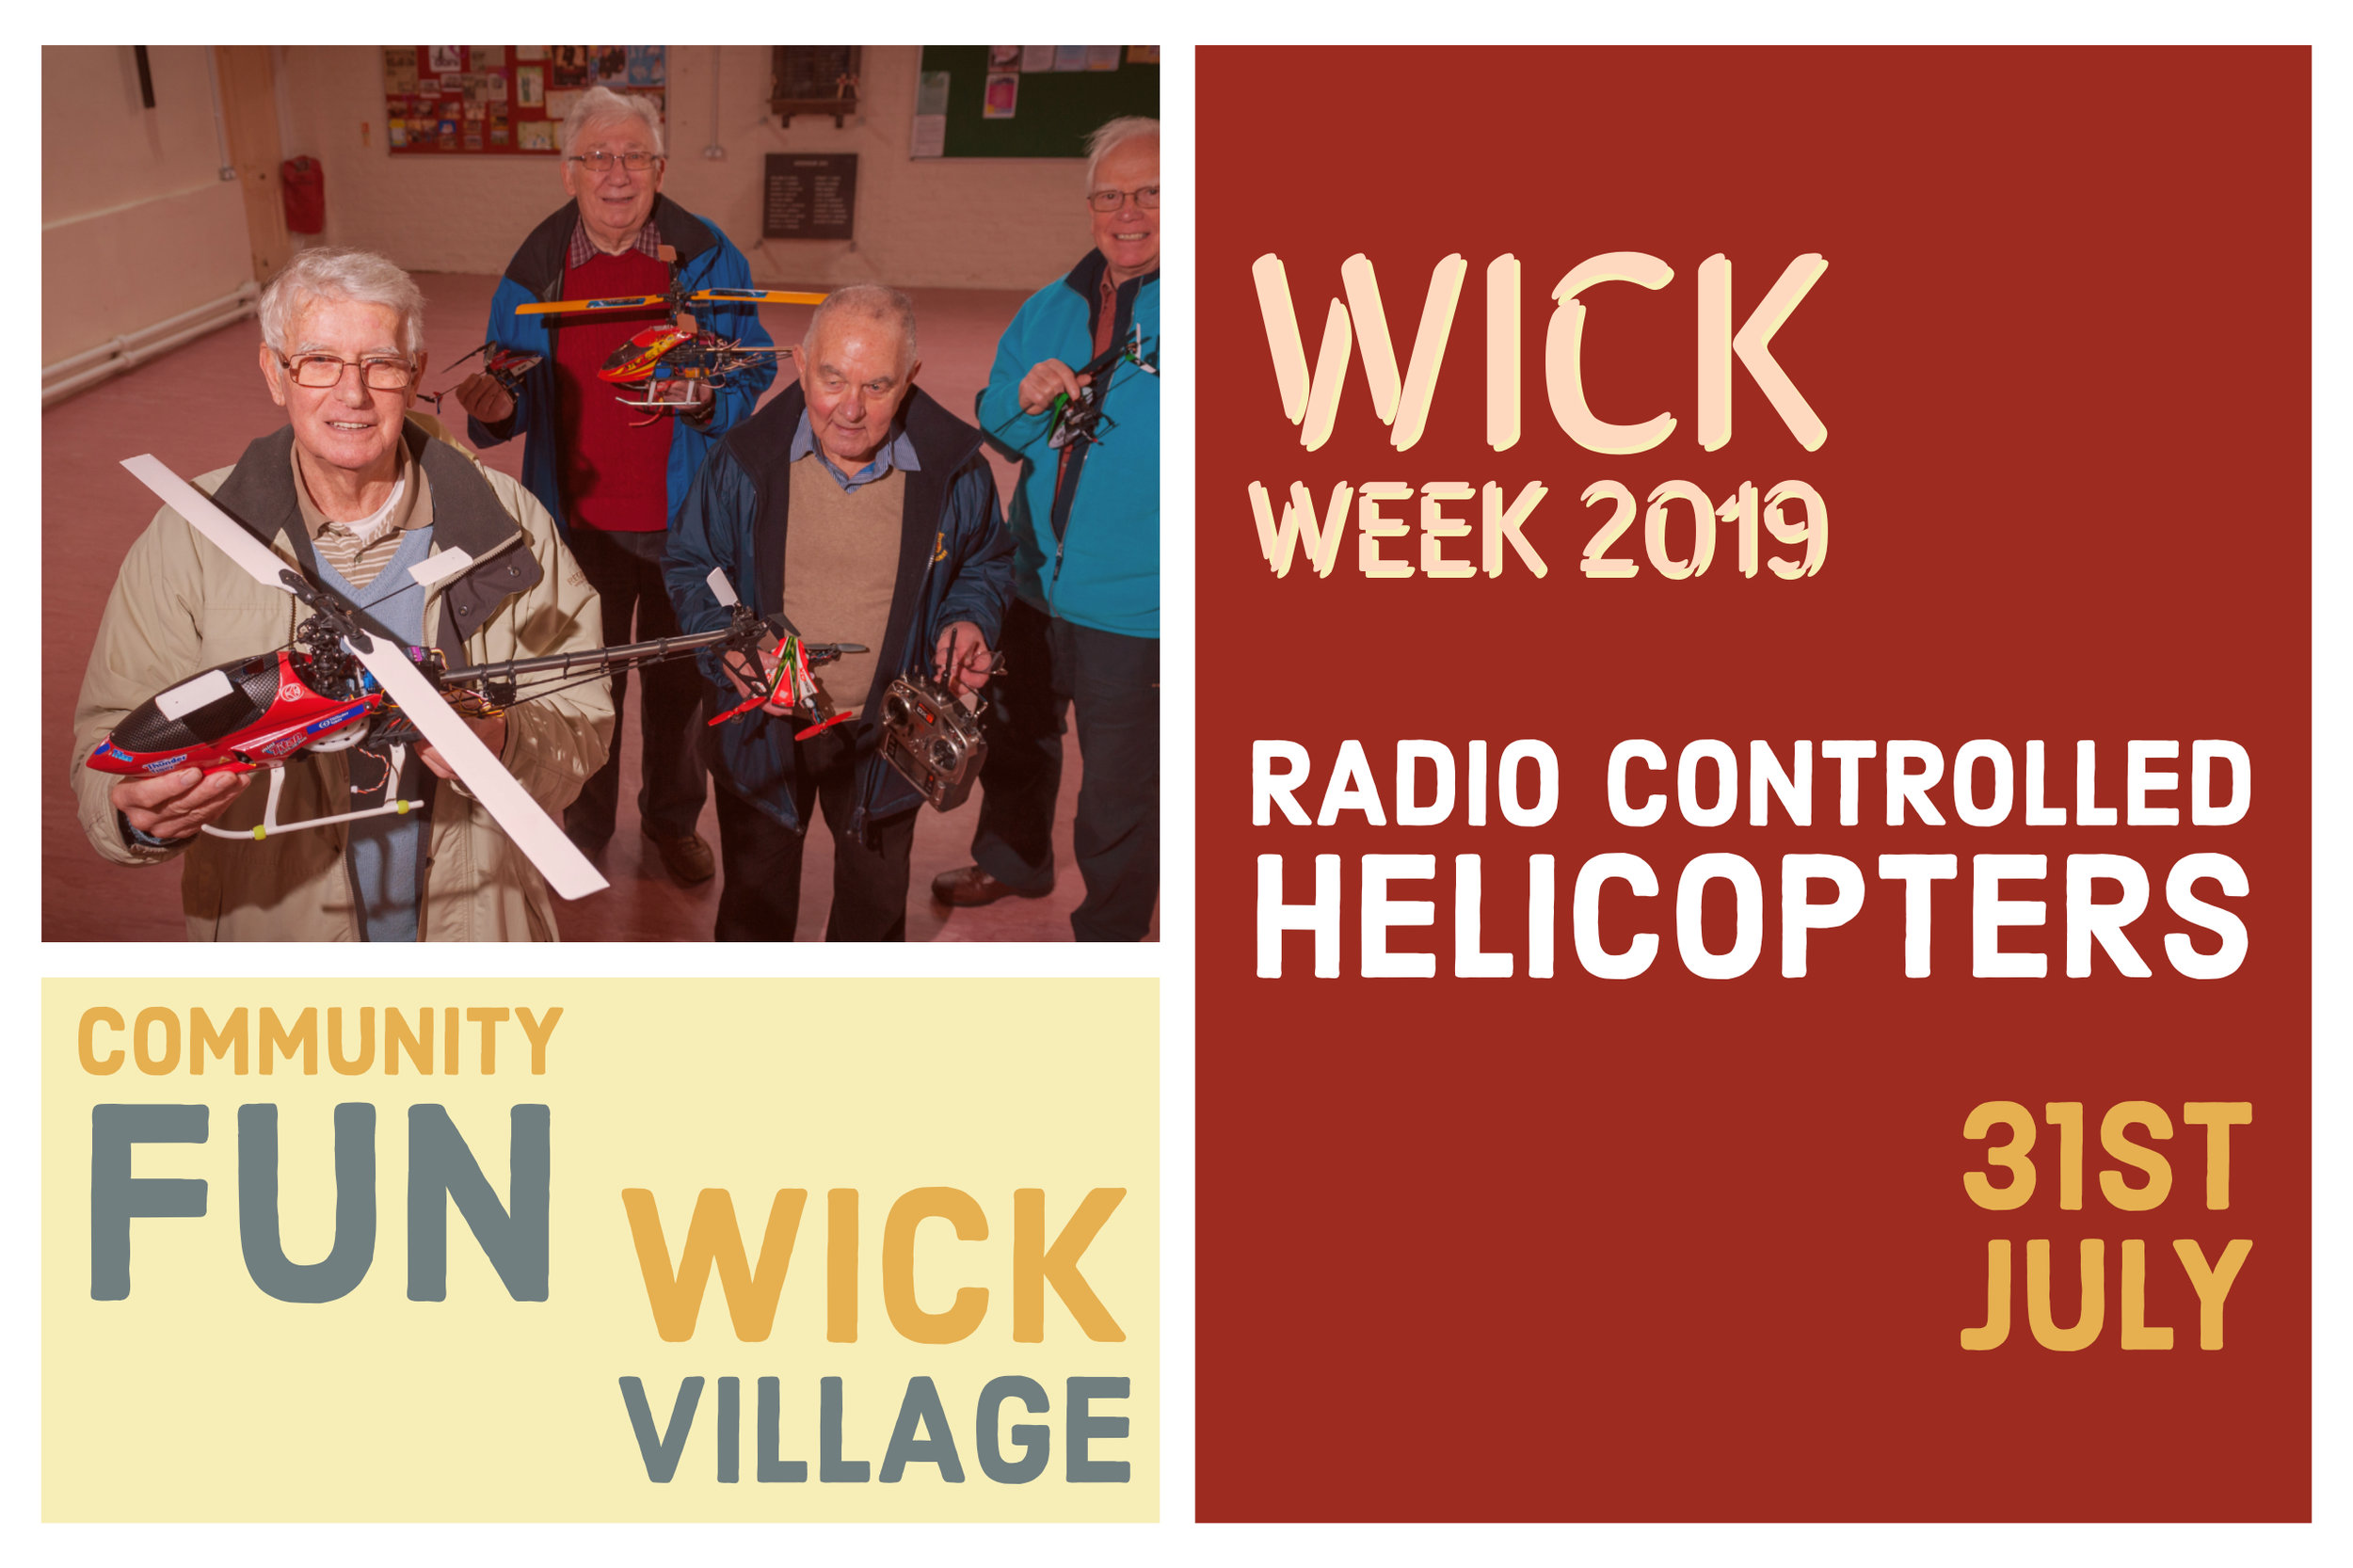 Wick Week 2019 - Radio Controlled Helicopters.